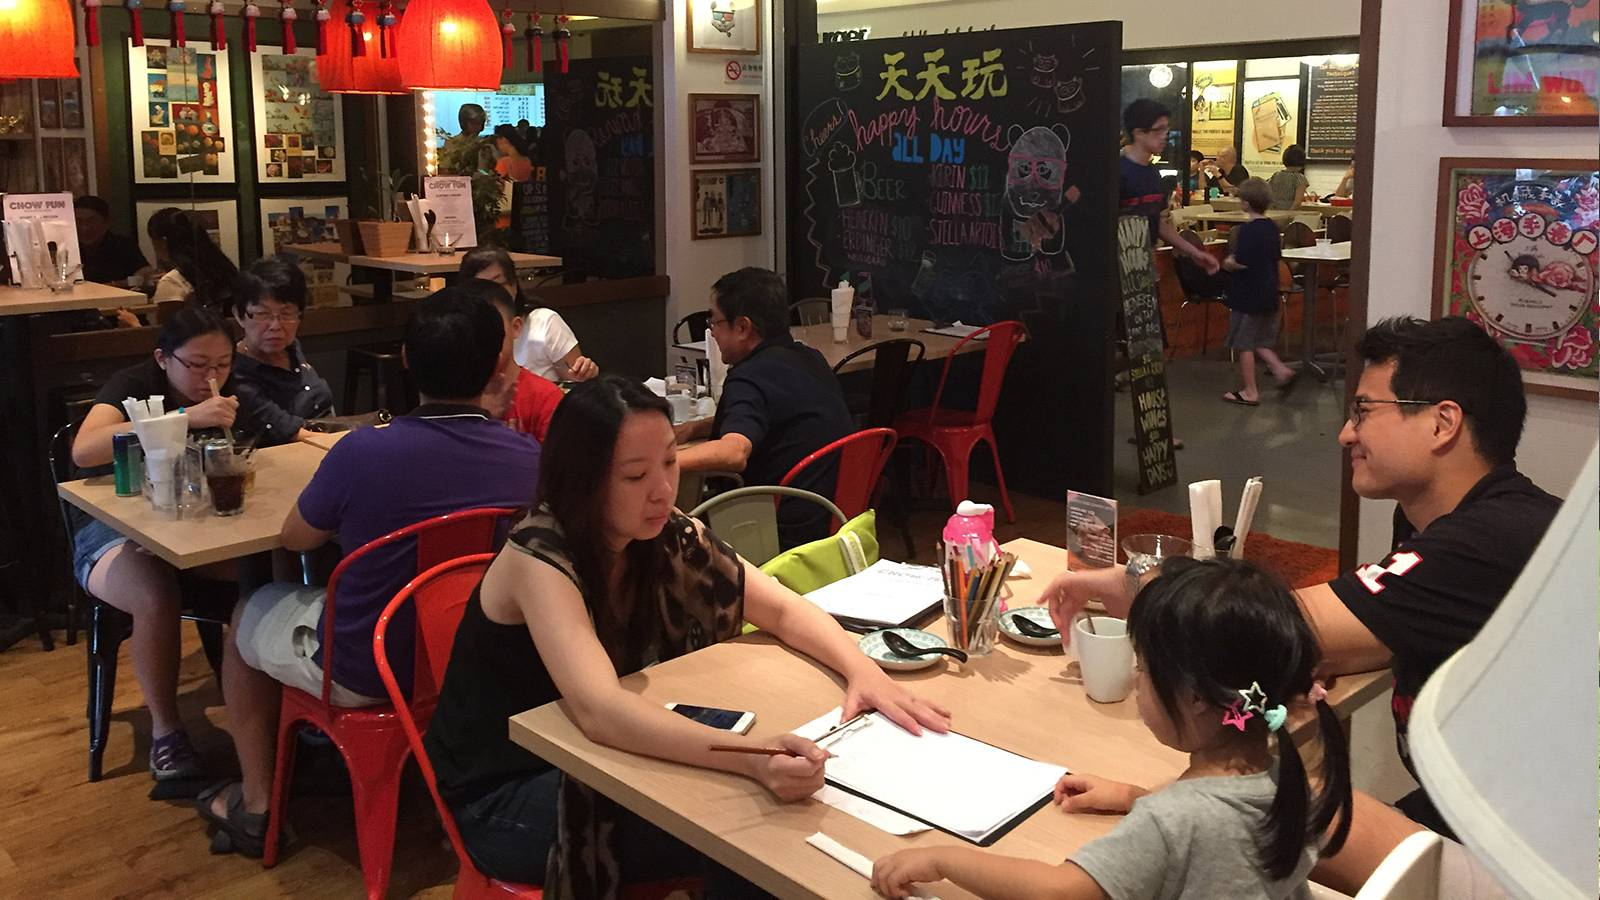 Parents-Restaurant-Review-–-Chow-Fun-Restaurant-&-Bar-INTERIOR